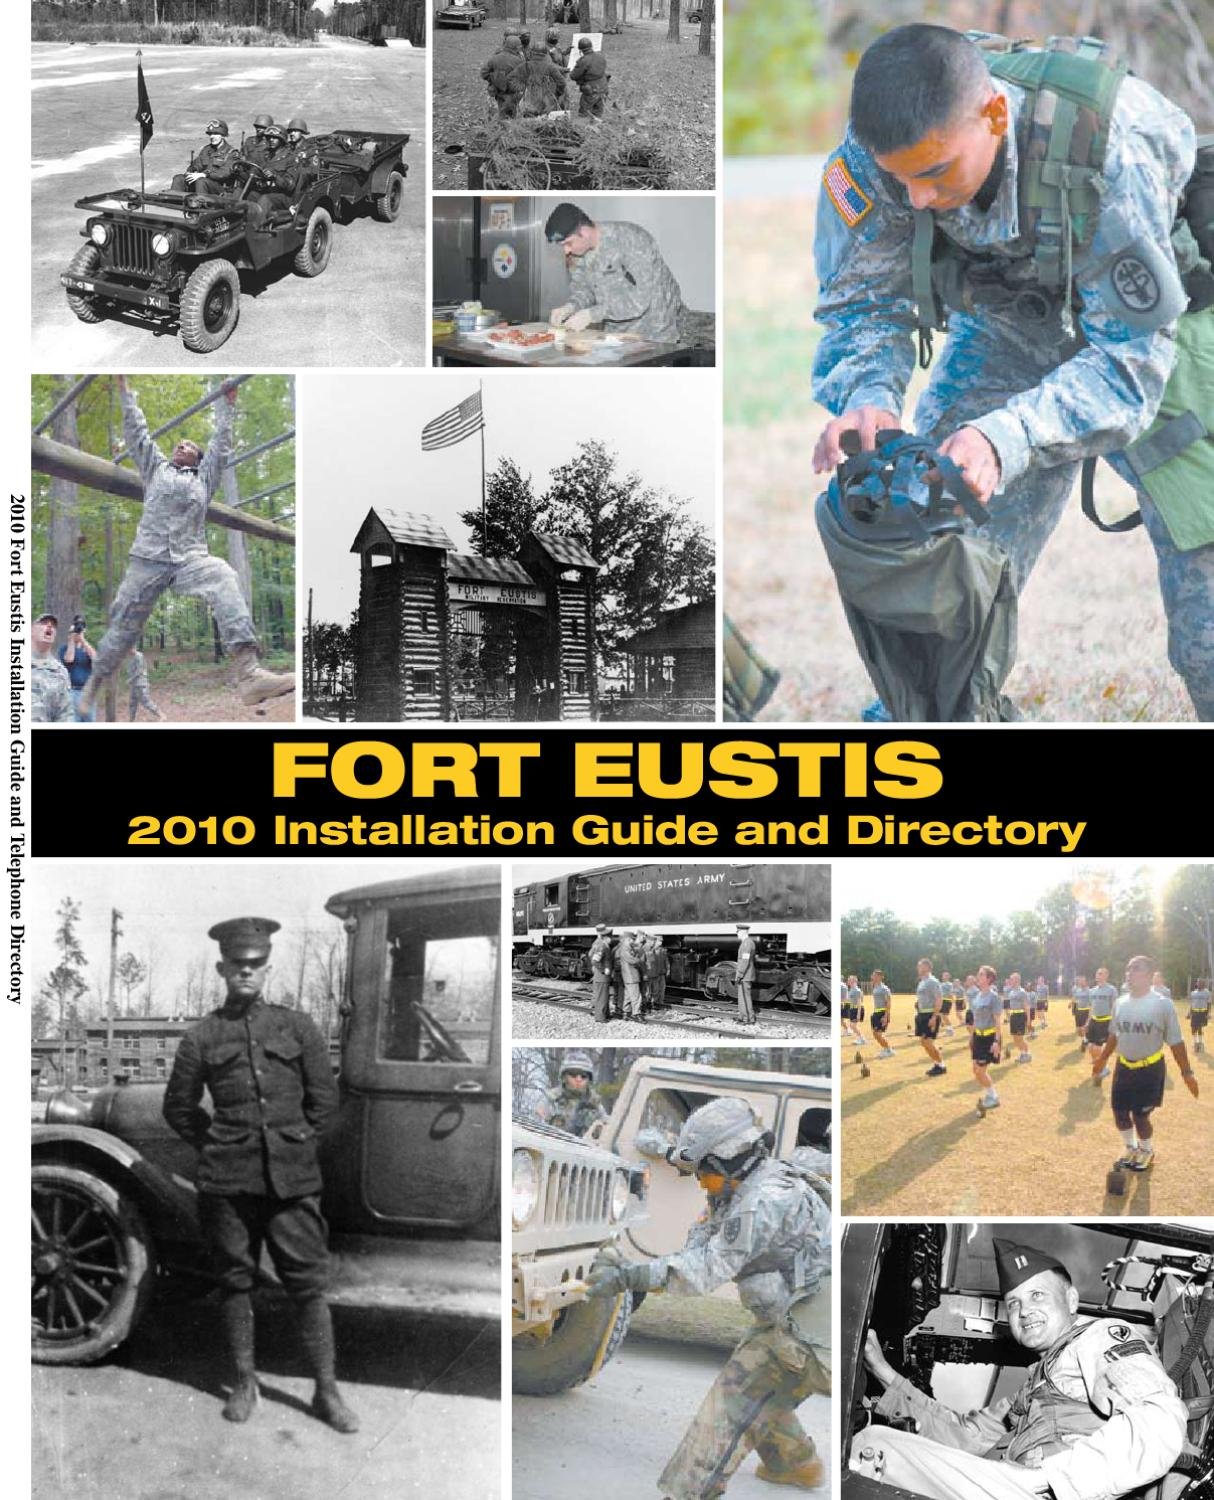 Fort Eustis Installation Guide 2010 by